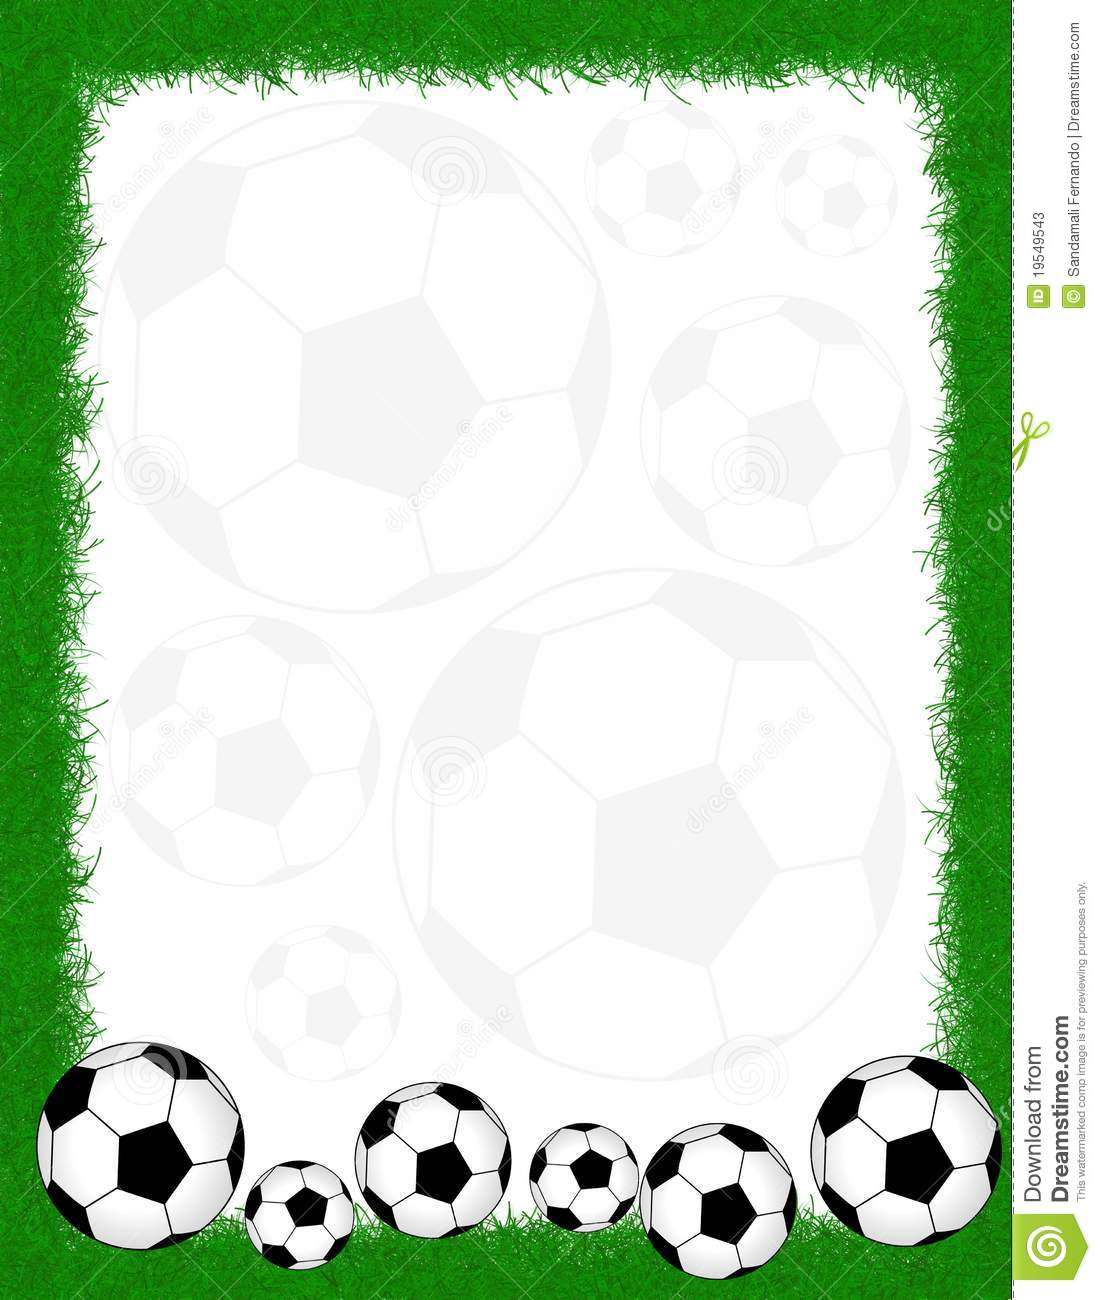 football borders and frames soccer frame border 19549543 jpg